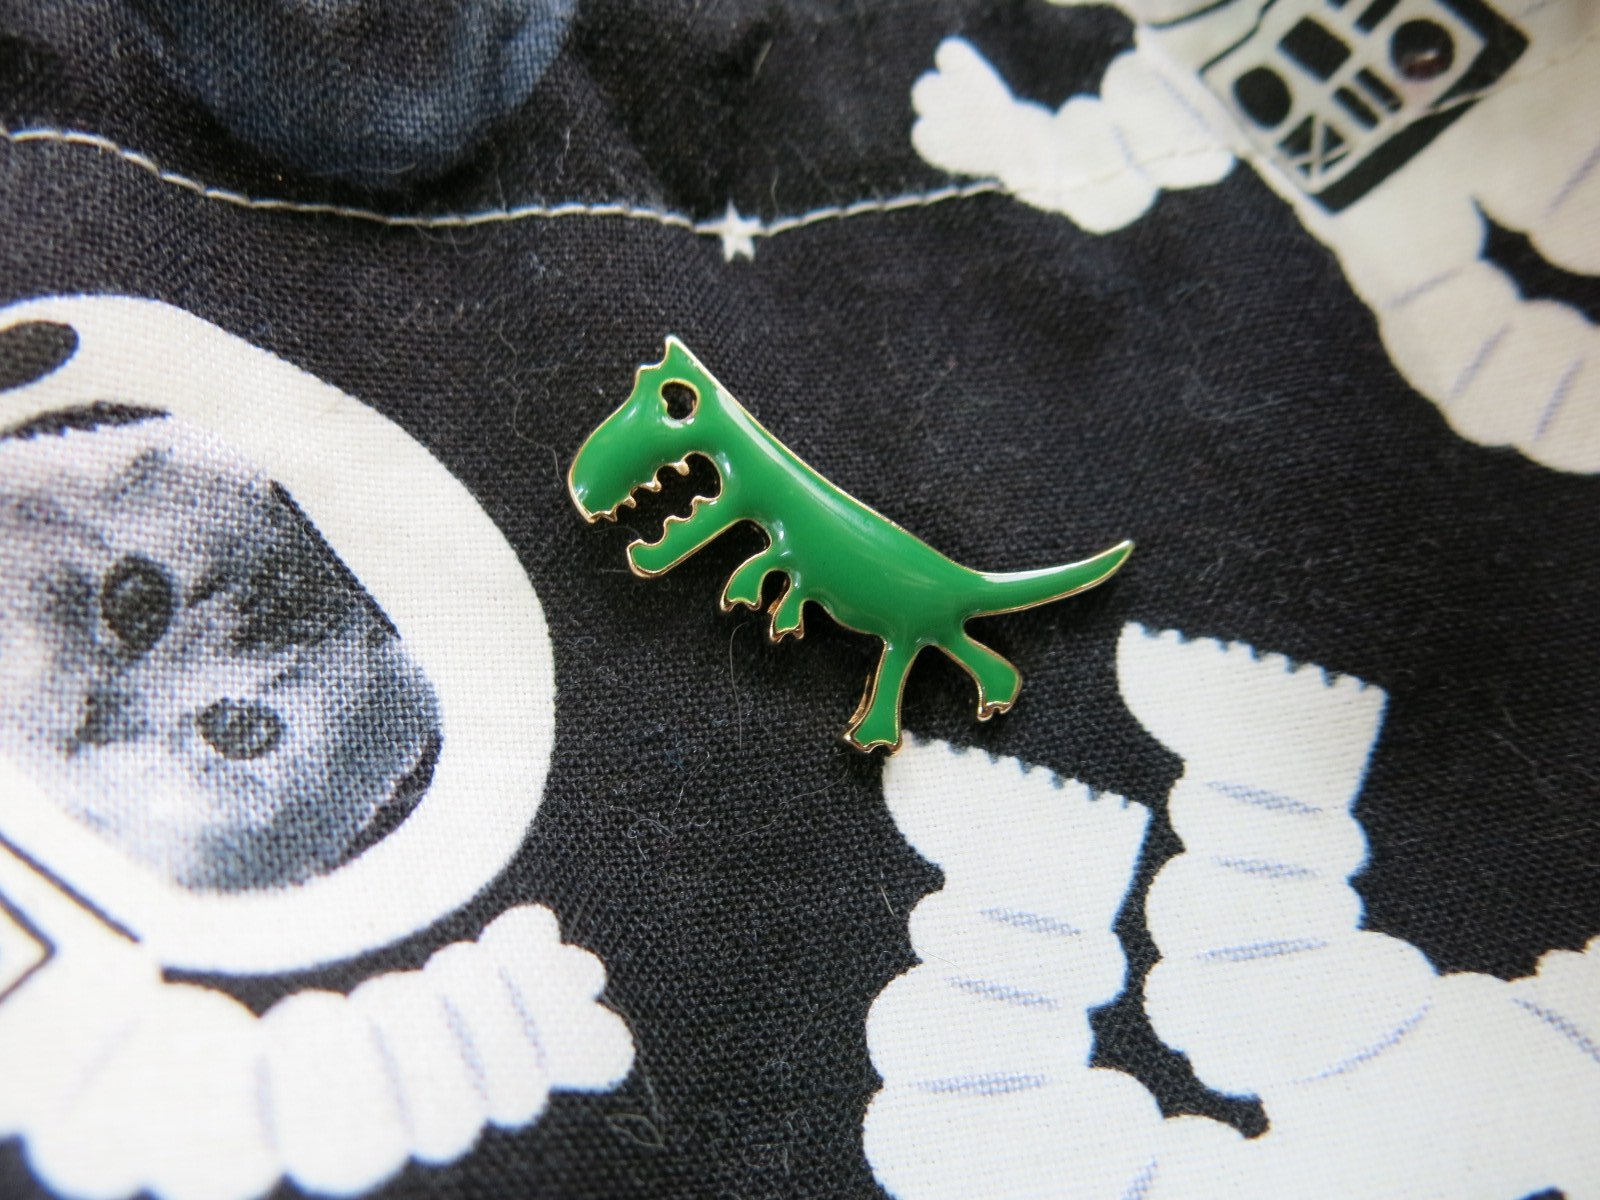 green tyrannosaurus rex dinosaur enamel pin for shirts, bags and backpacks